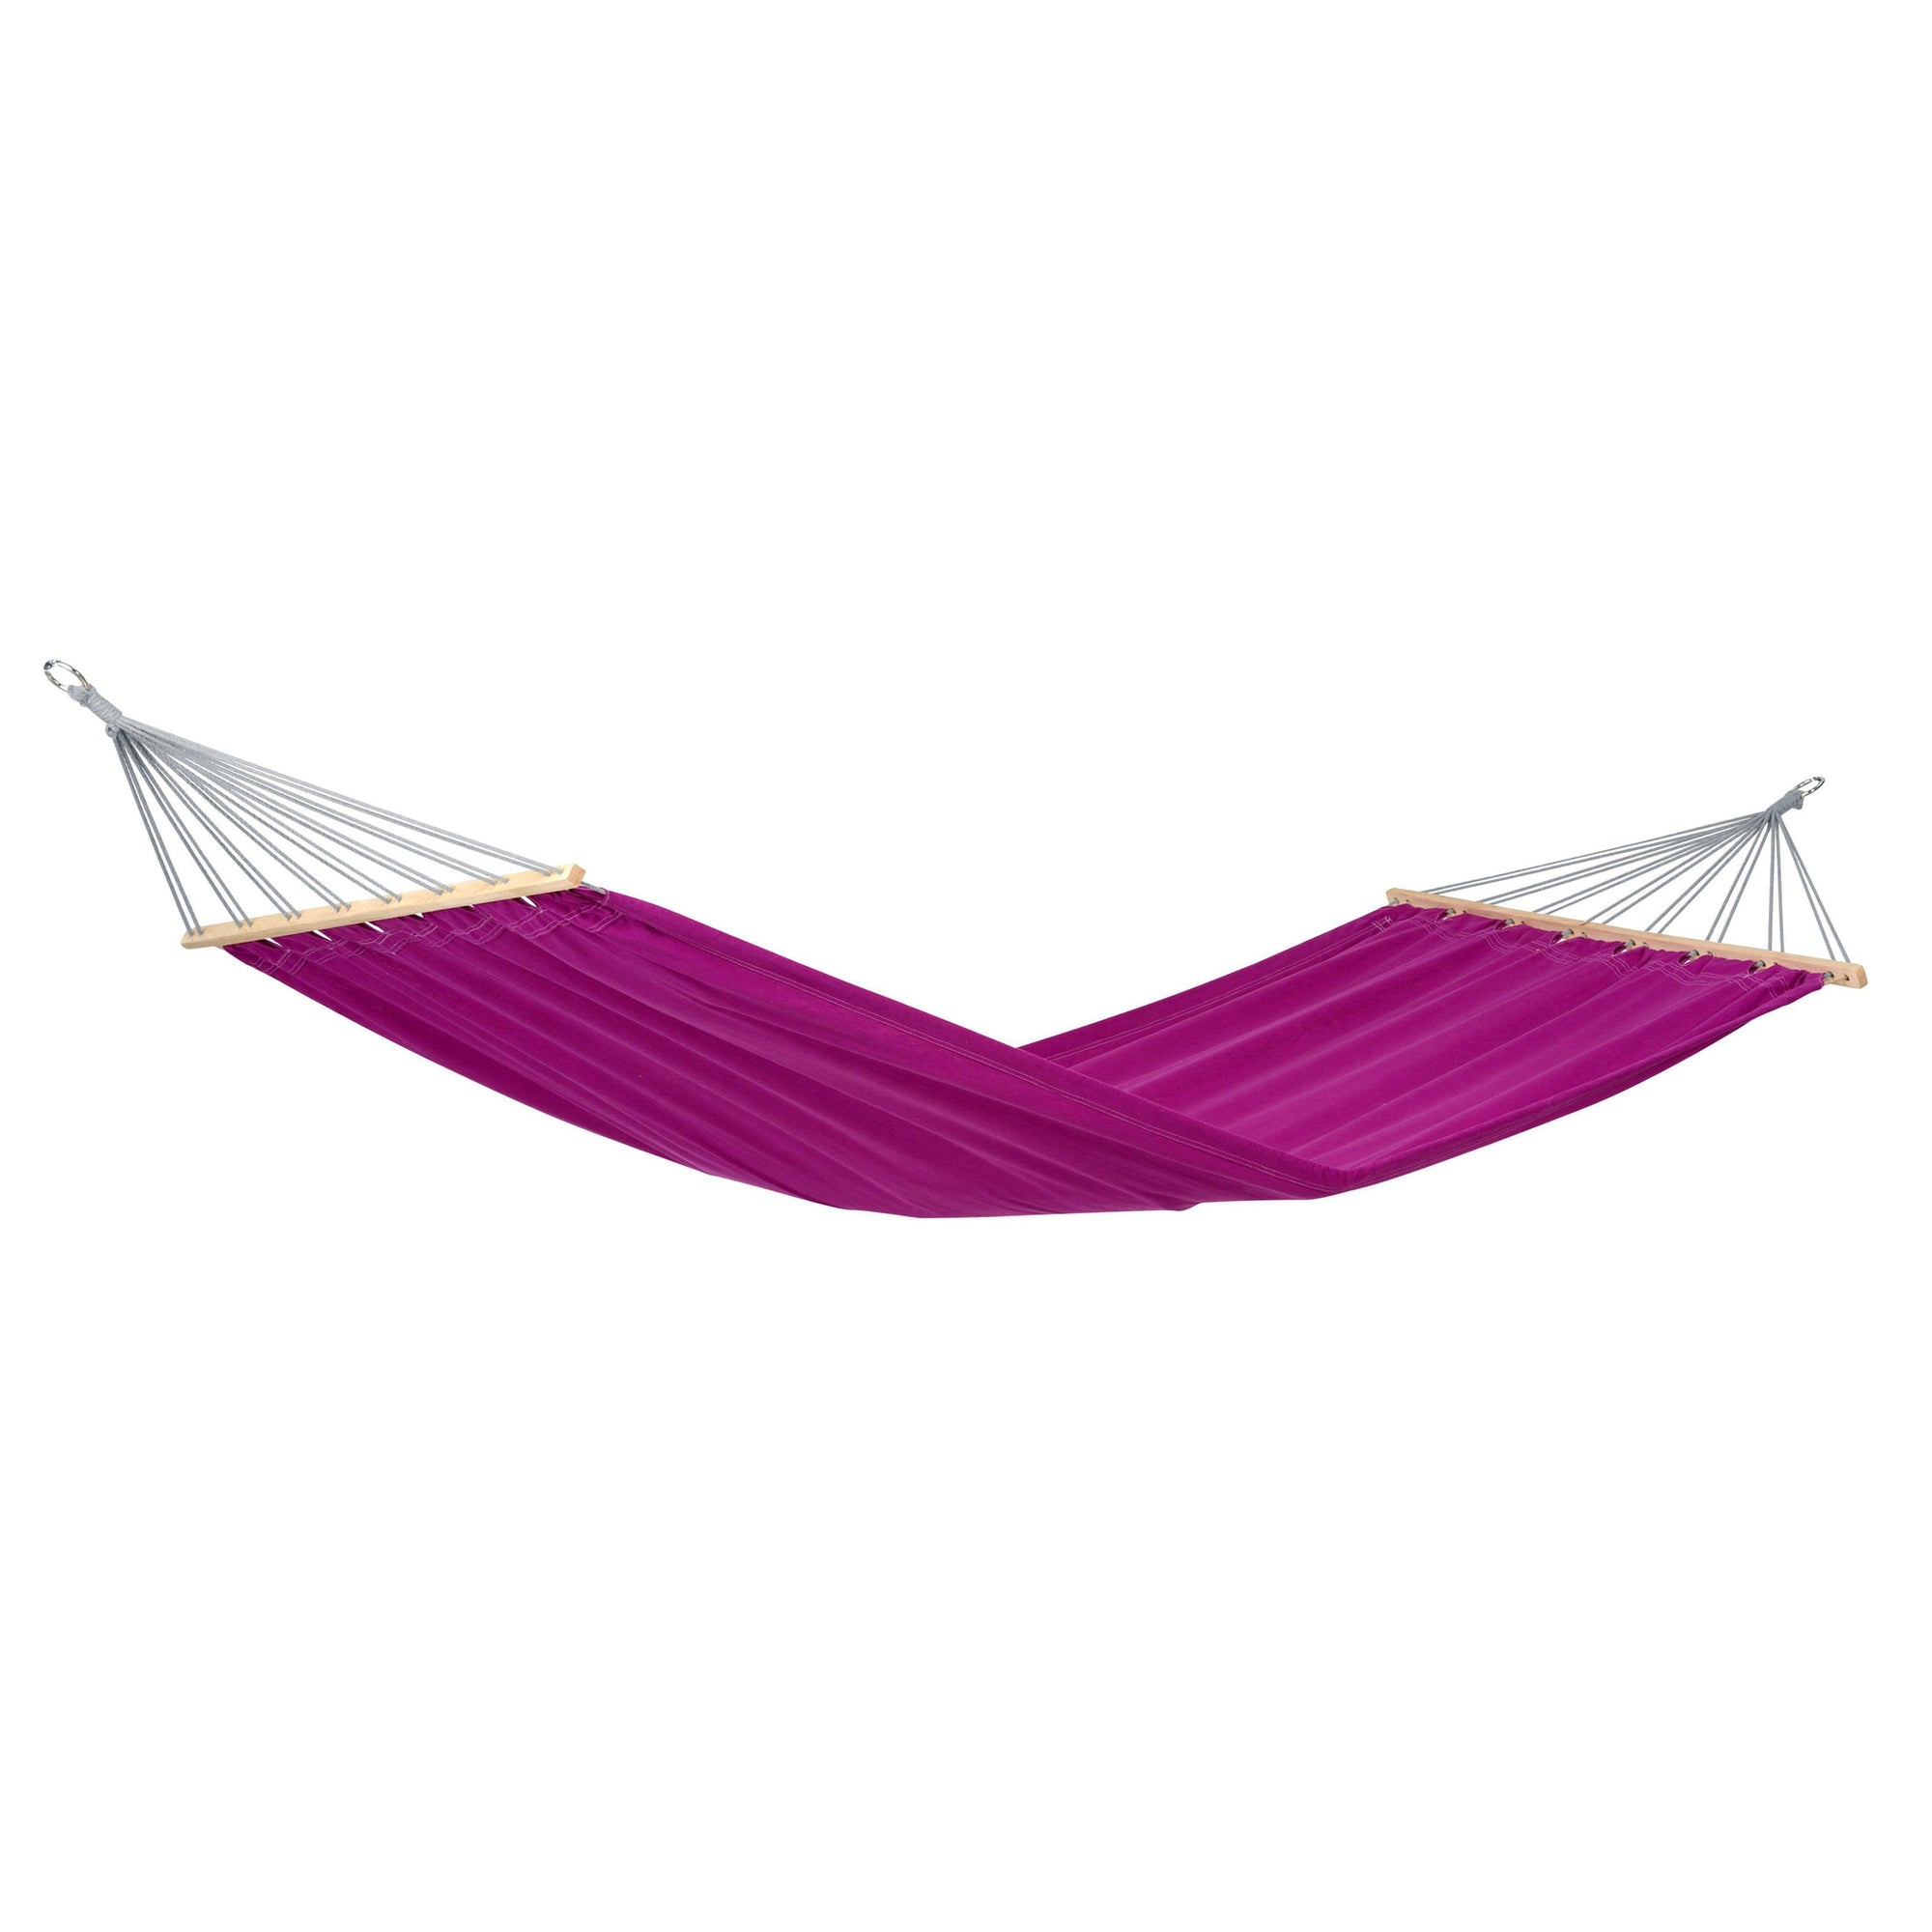 Miami Hammock, Kiwi, from Byer of Maine